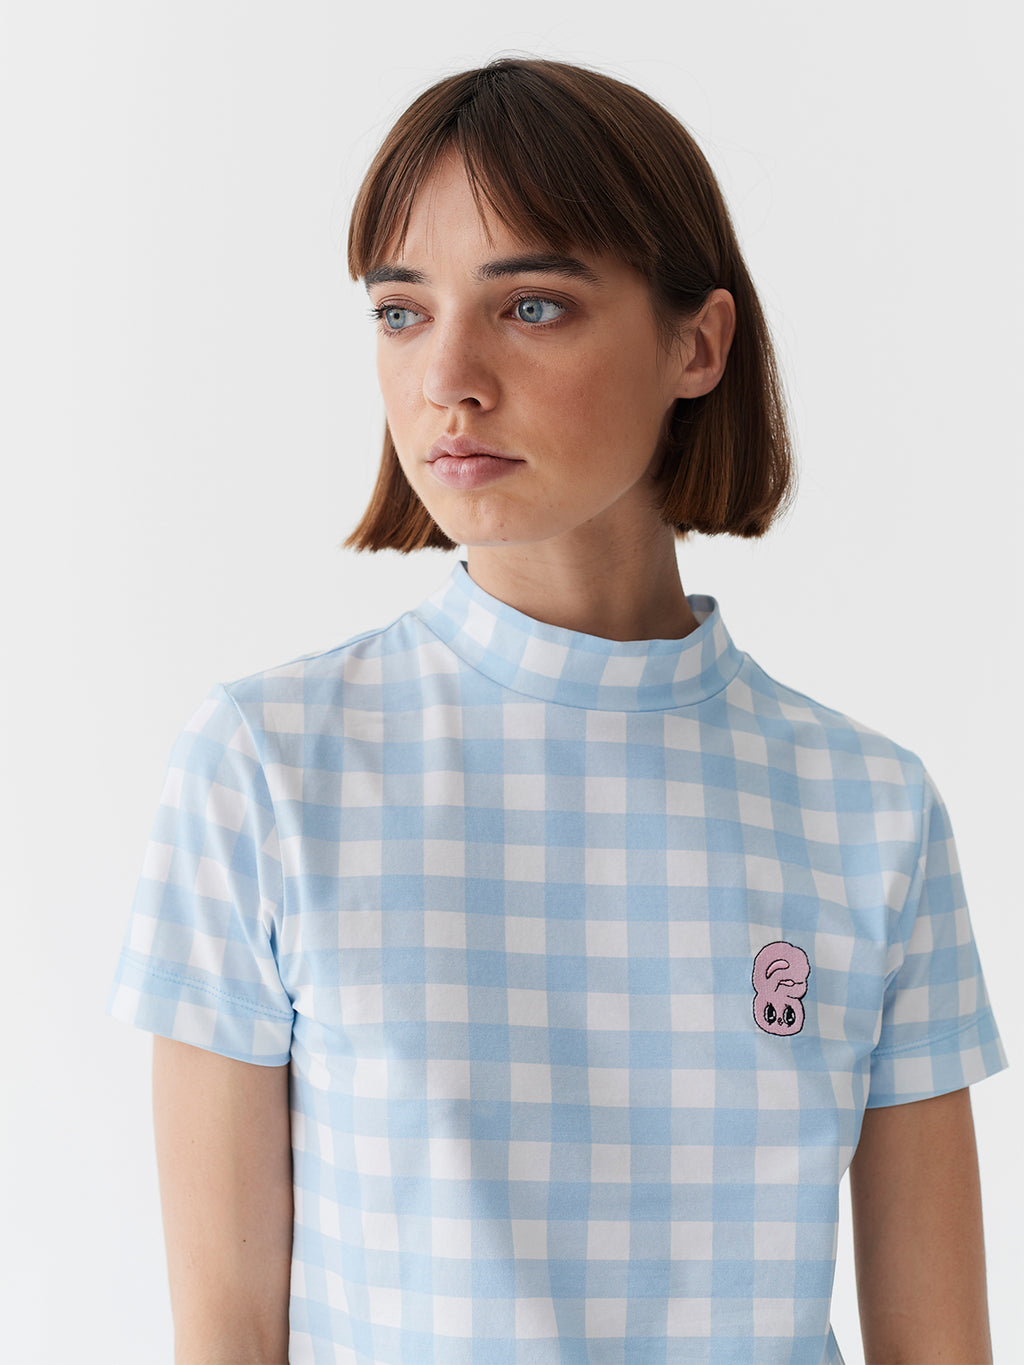 Esther Loves Oaf Gingham Top